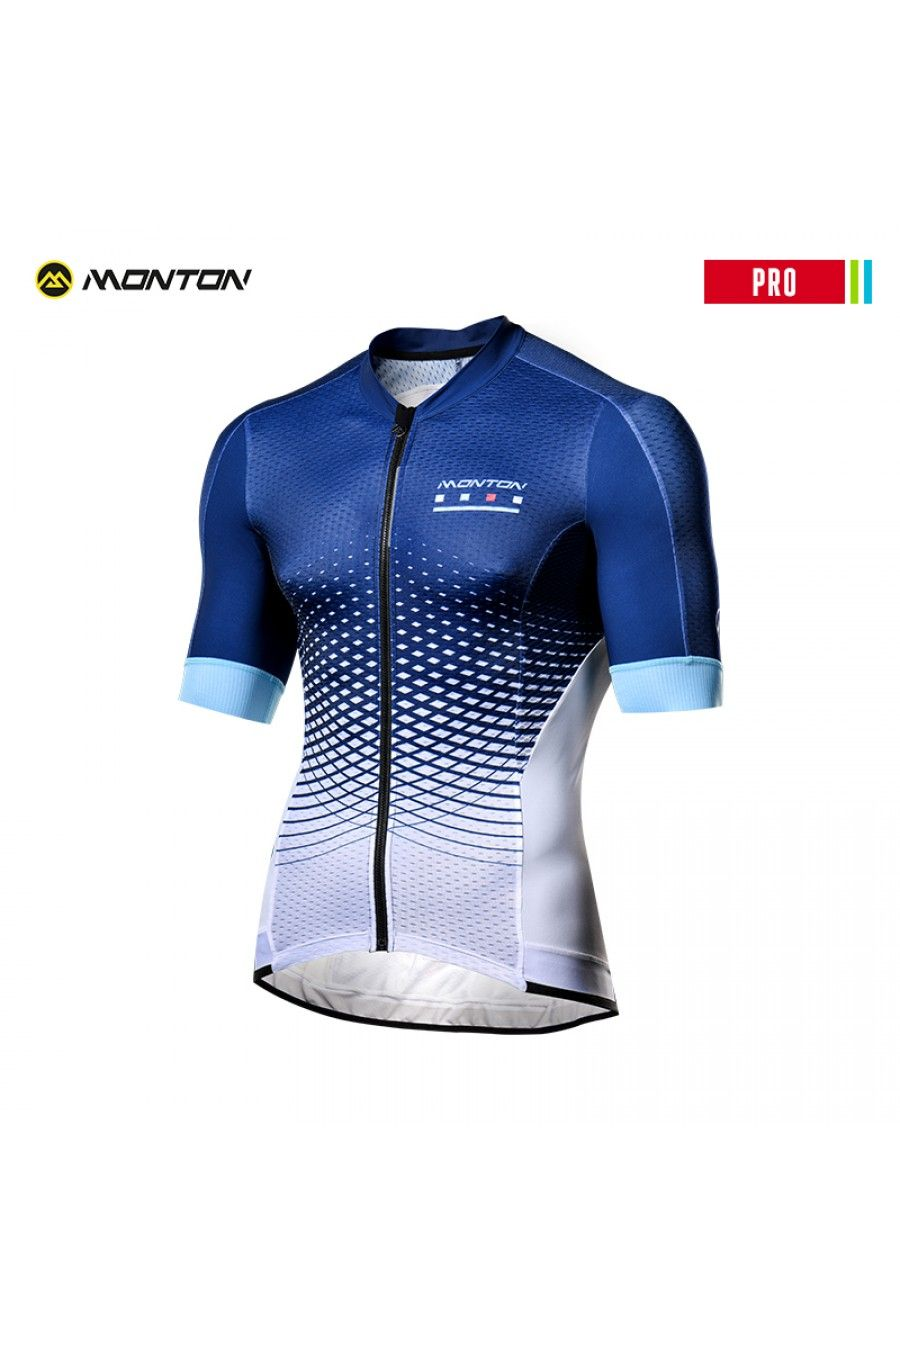 018f1d942 Blue and white cycling jersey. Blue and white cycling jersey Cycling Gear